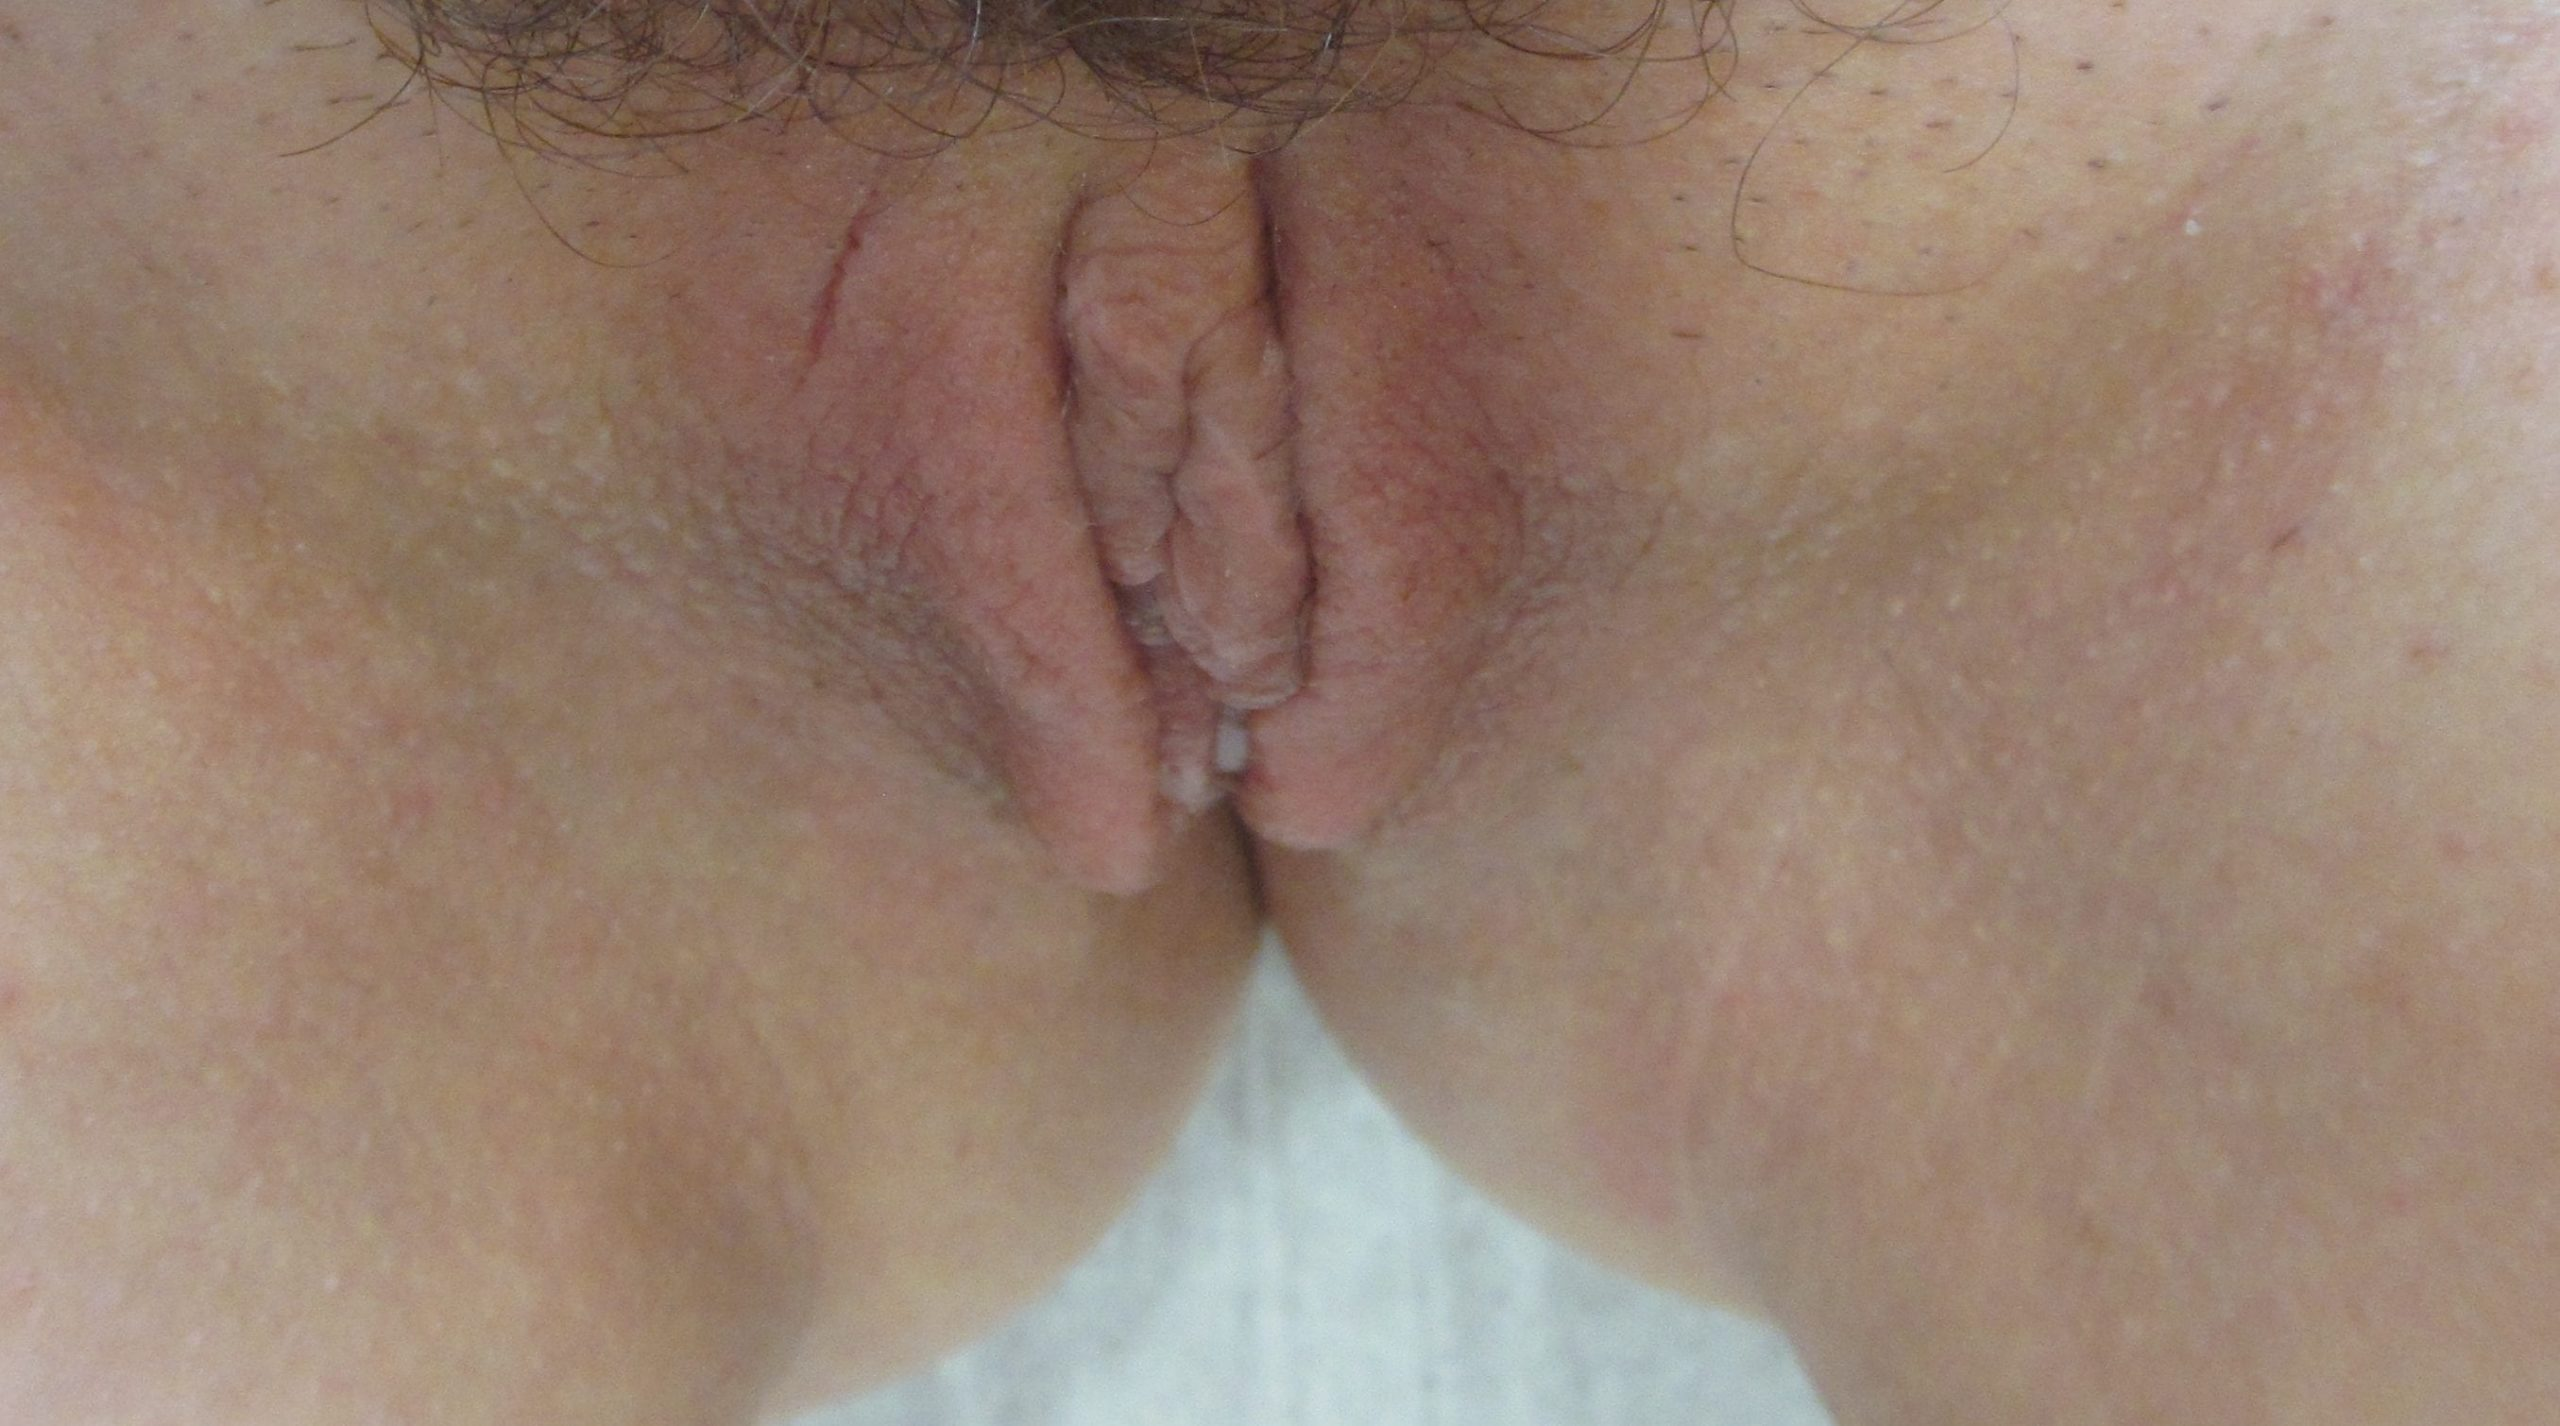 Labiaplasty Patient Photo - Case 153 - after view